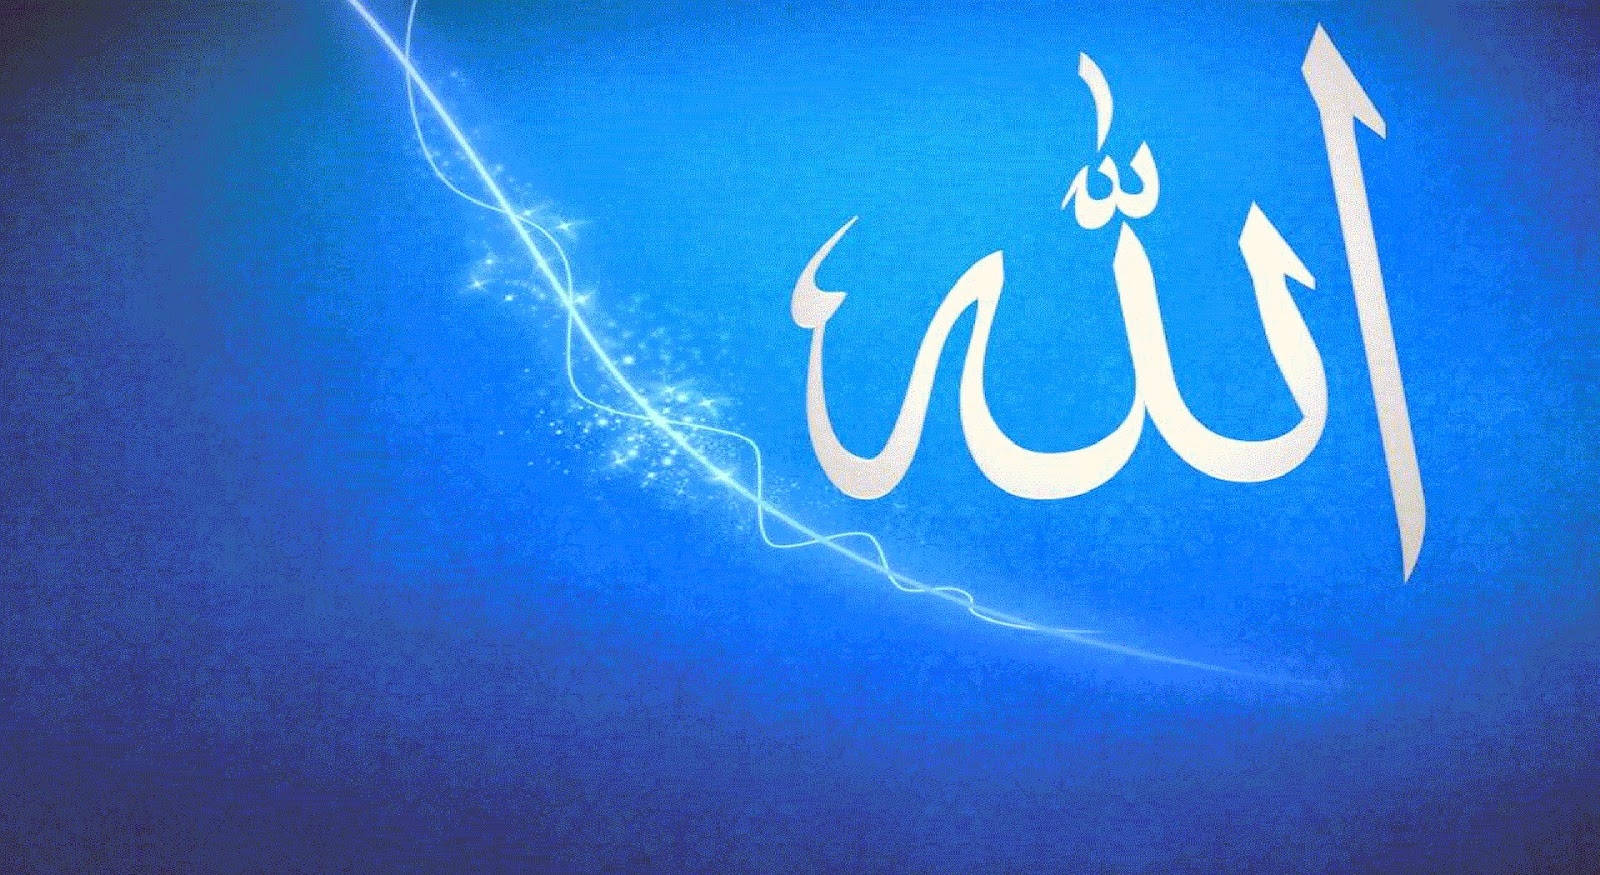 Wallpaper Allah hd wallpaper Allah Name Islam Images Background HD 1600x875